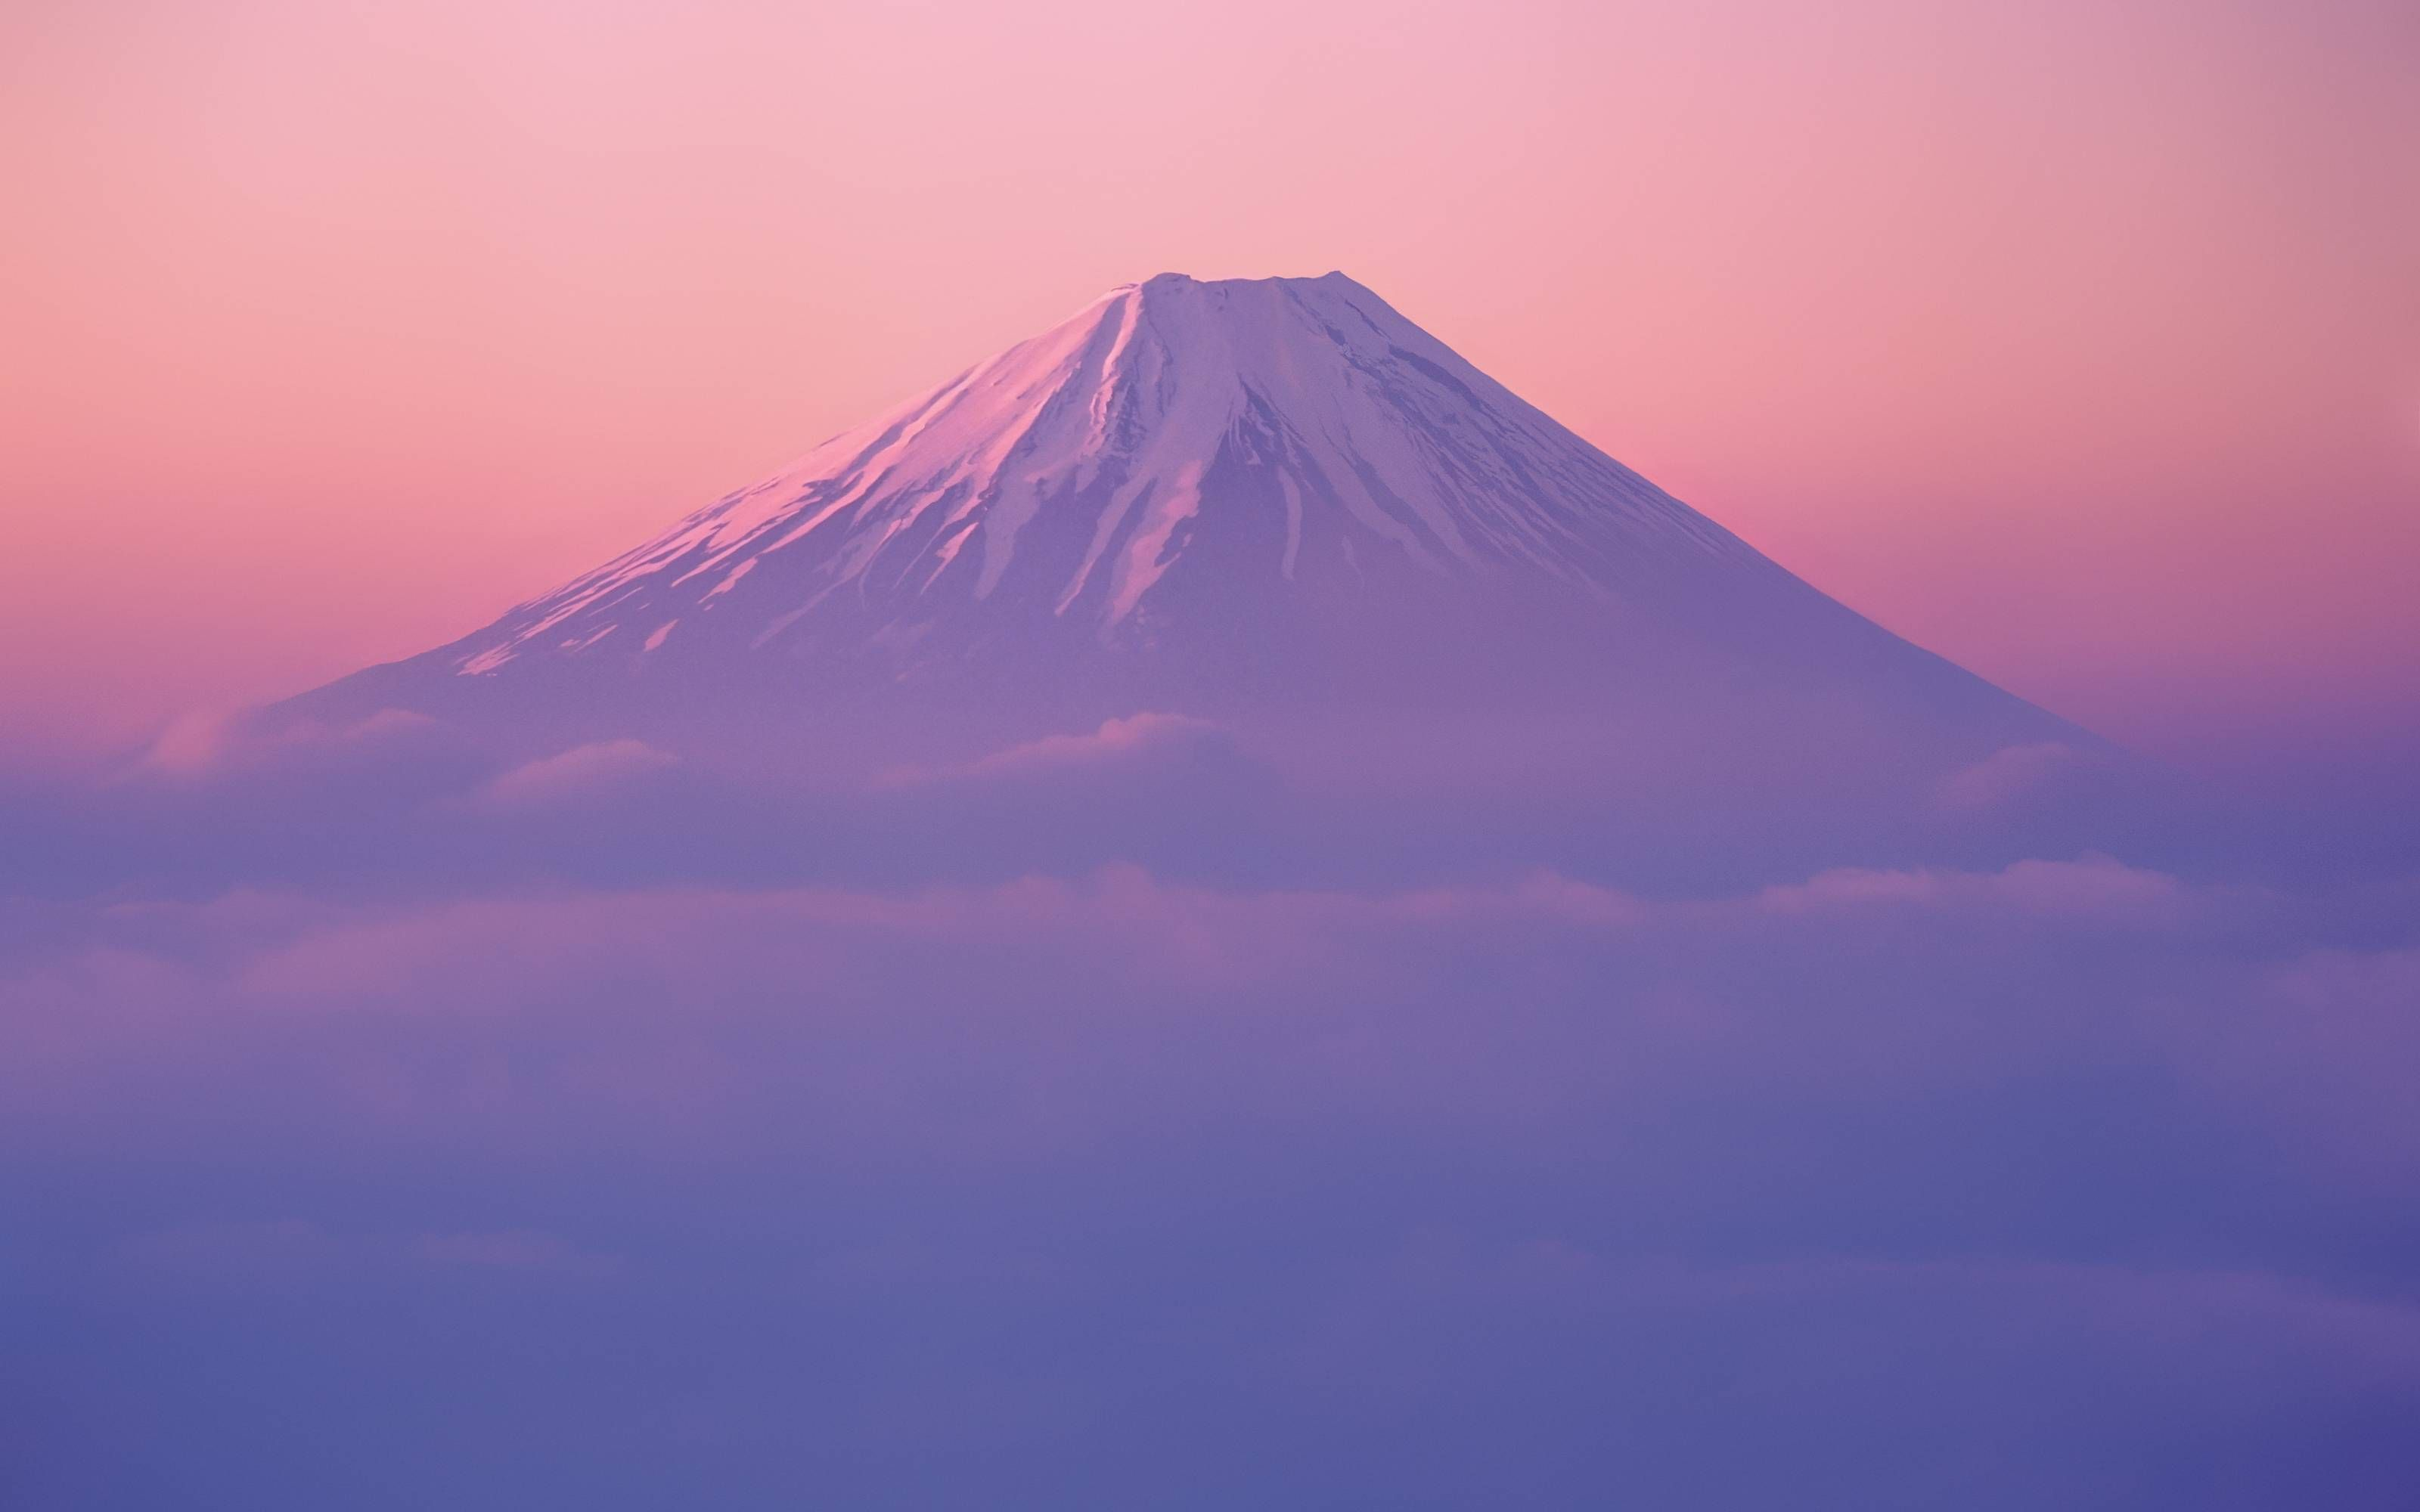 new mt fuji wallpaper in mac os x lion developer preview 2